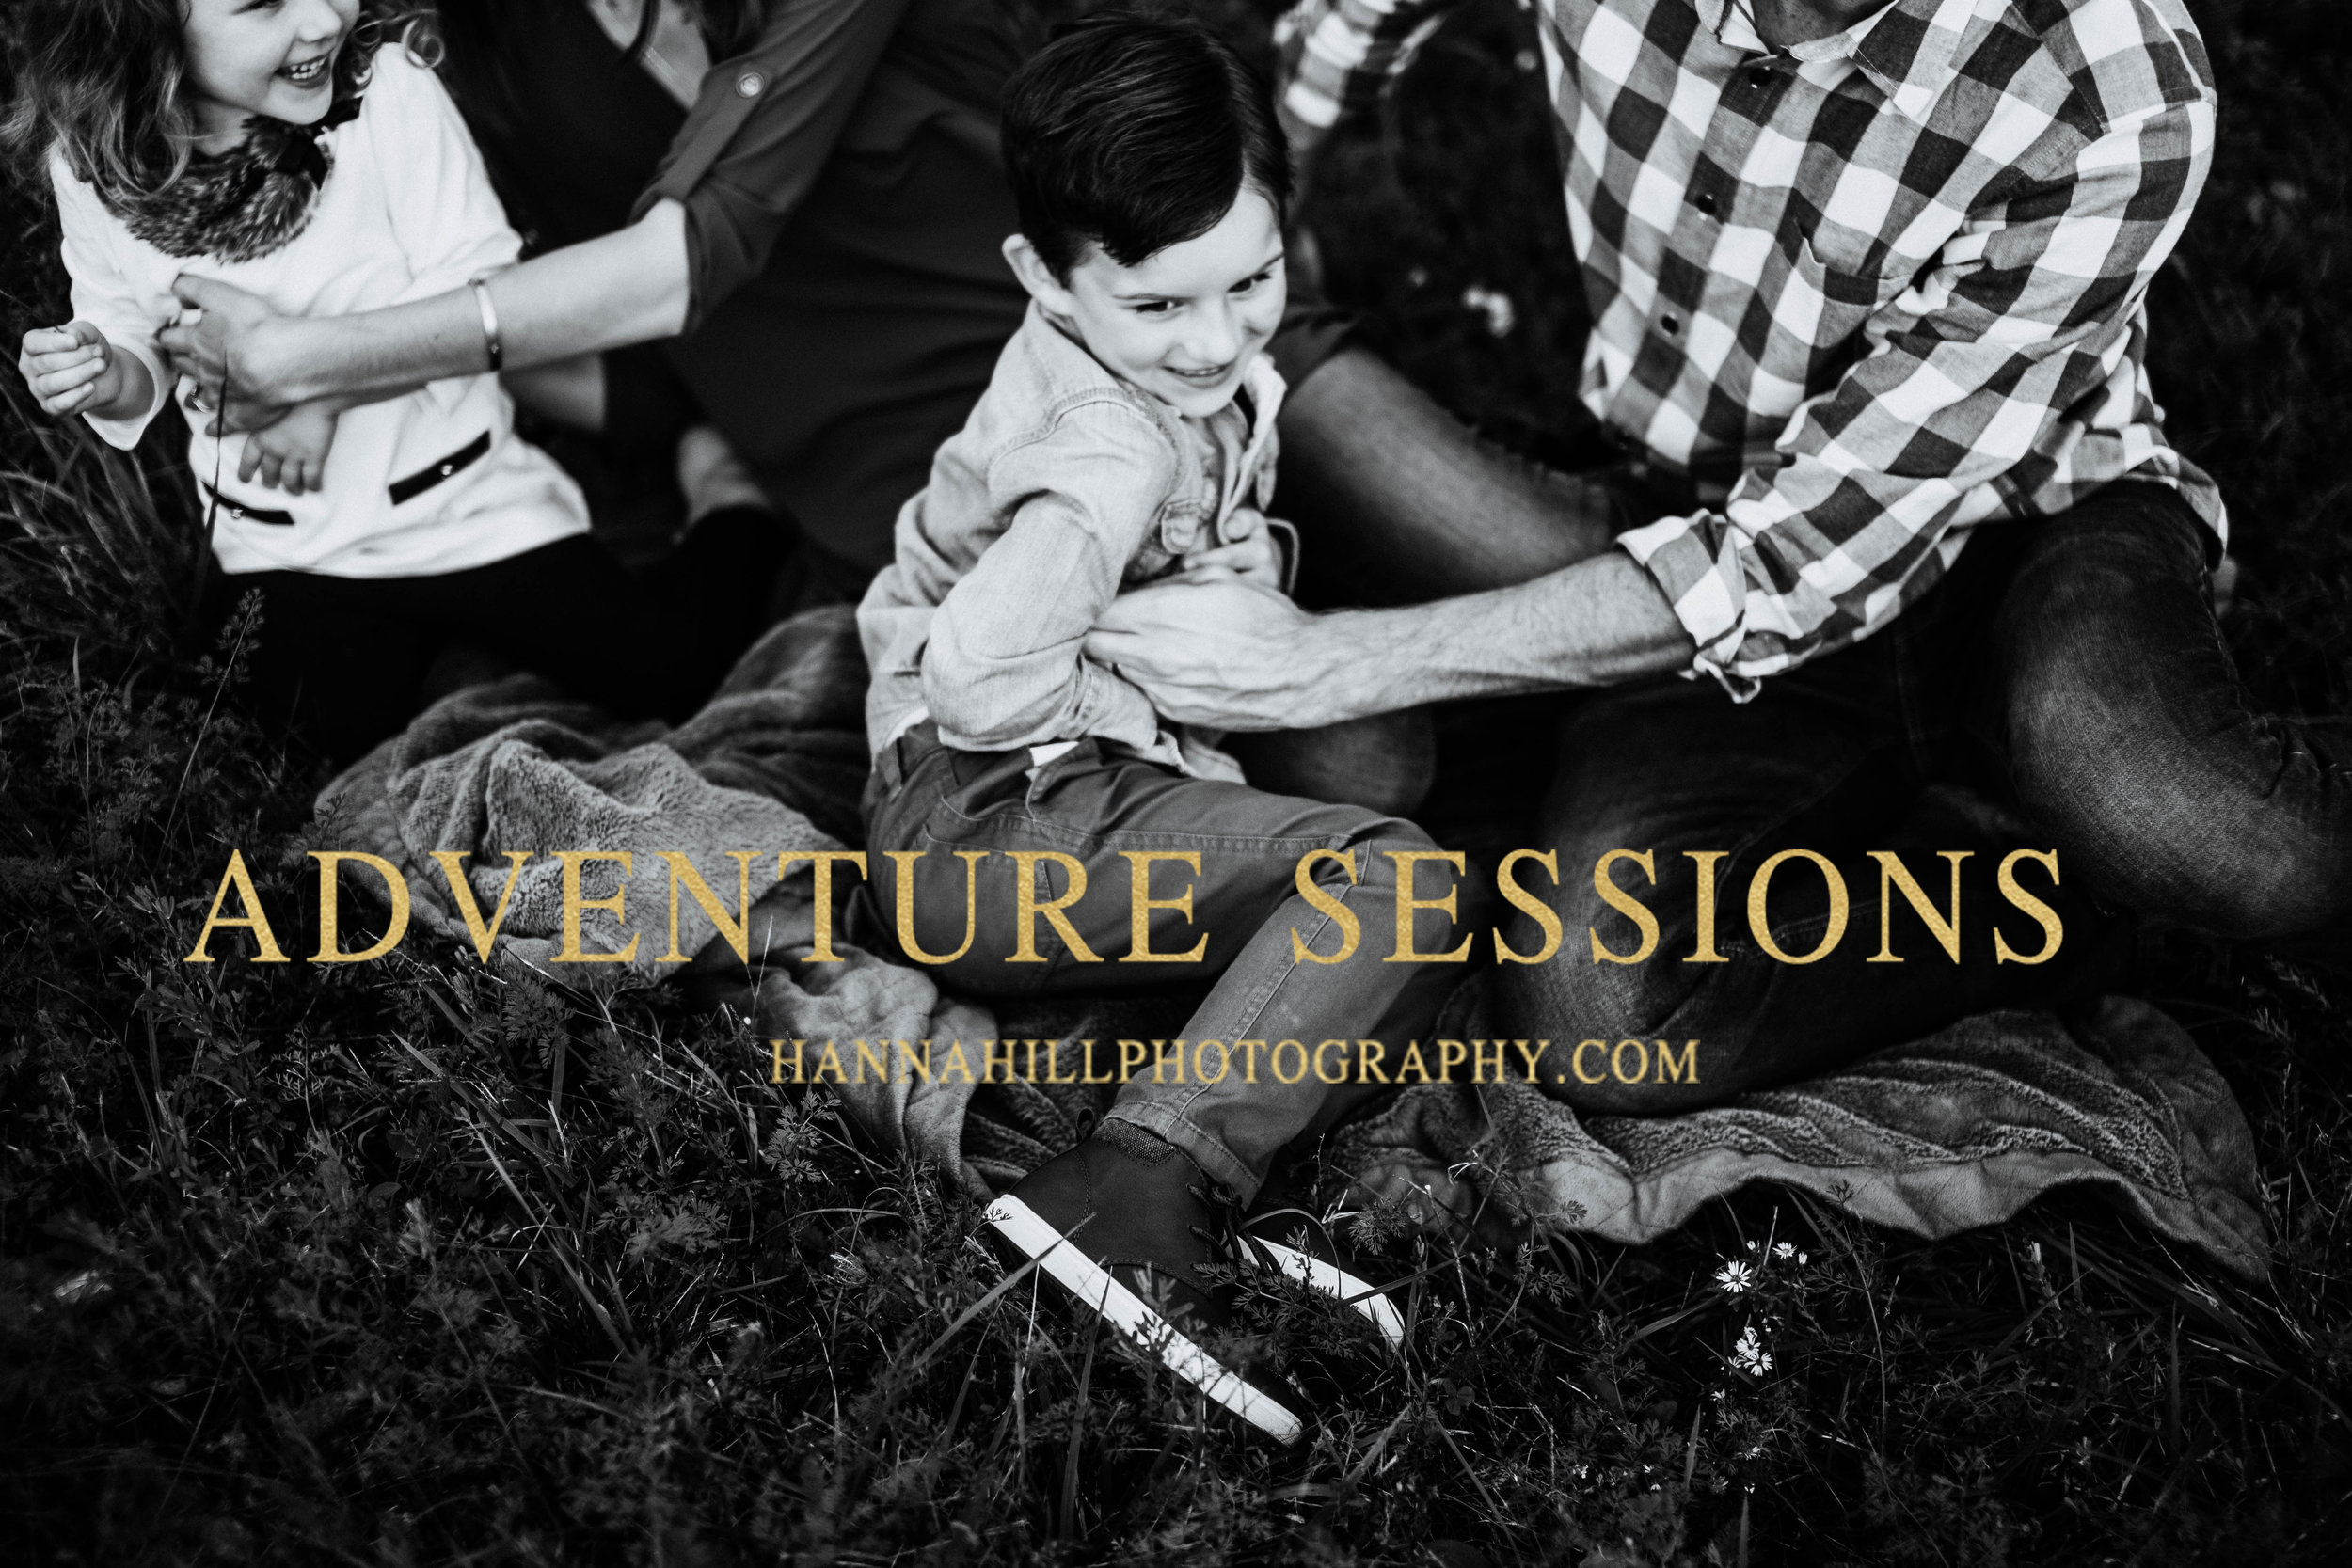 Adventure session | Hannahill Photography | kansas city, mo | lifestyle photography capturing real moments and adventure with your family! perfect for little ones with energy or families who share a lot of love!